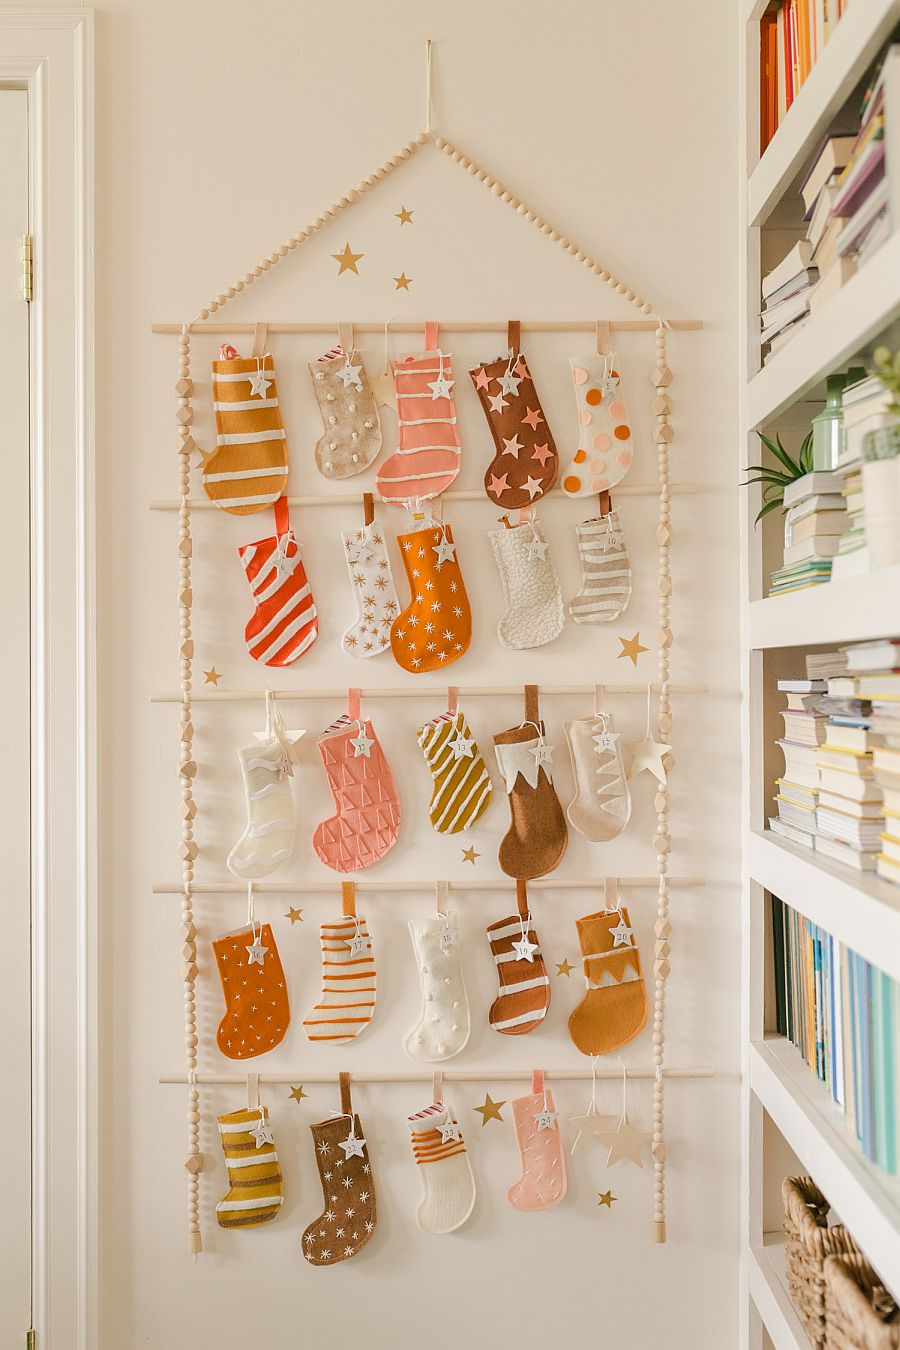 Heirloom Advent Calendar DIY adds festive mood to your home